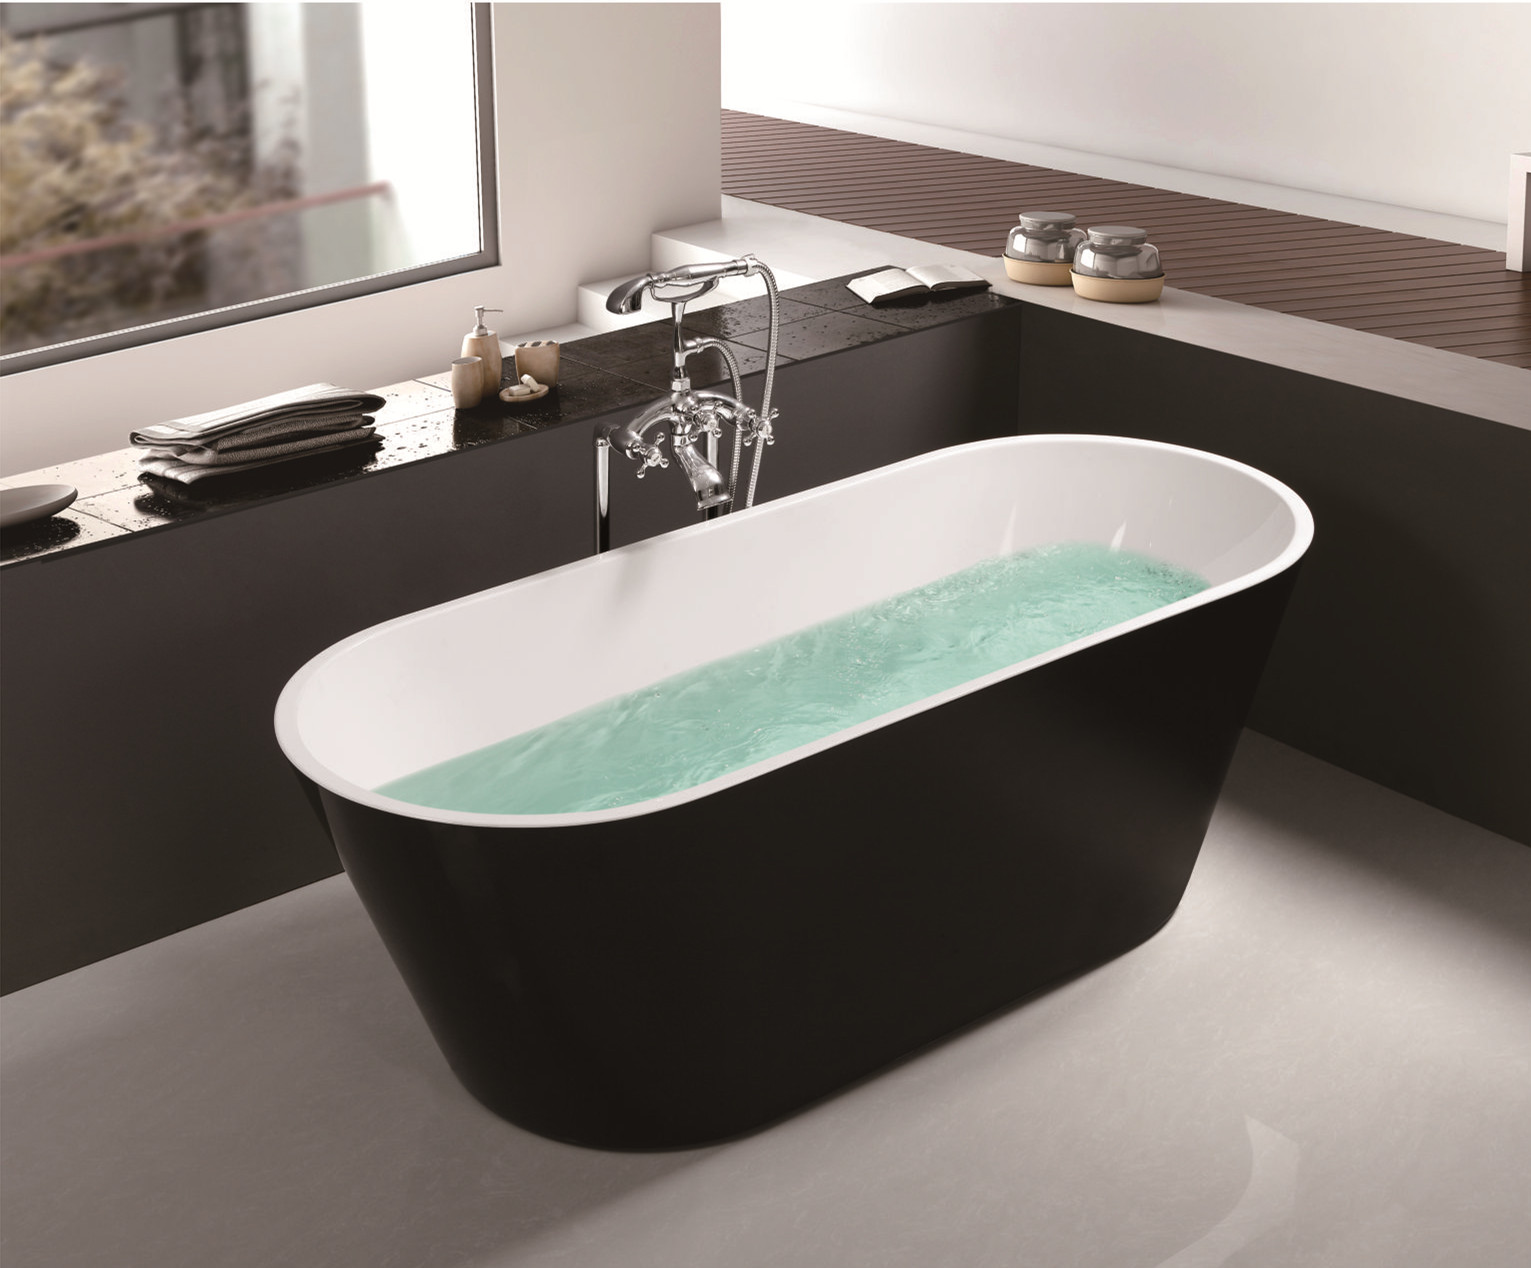 China Acrylic Freestanding Oval Shape Deep Soaking tub -Black Luxury ...